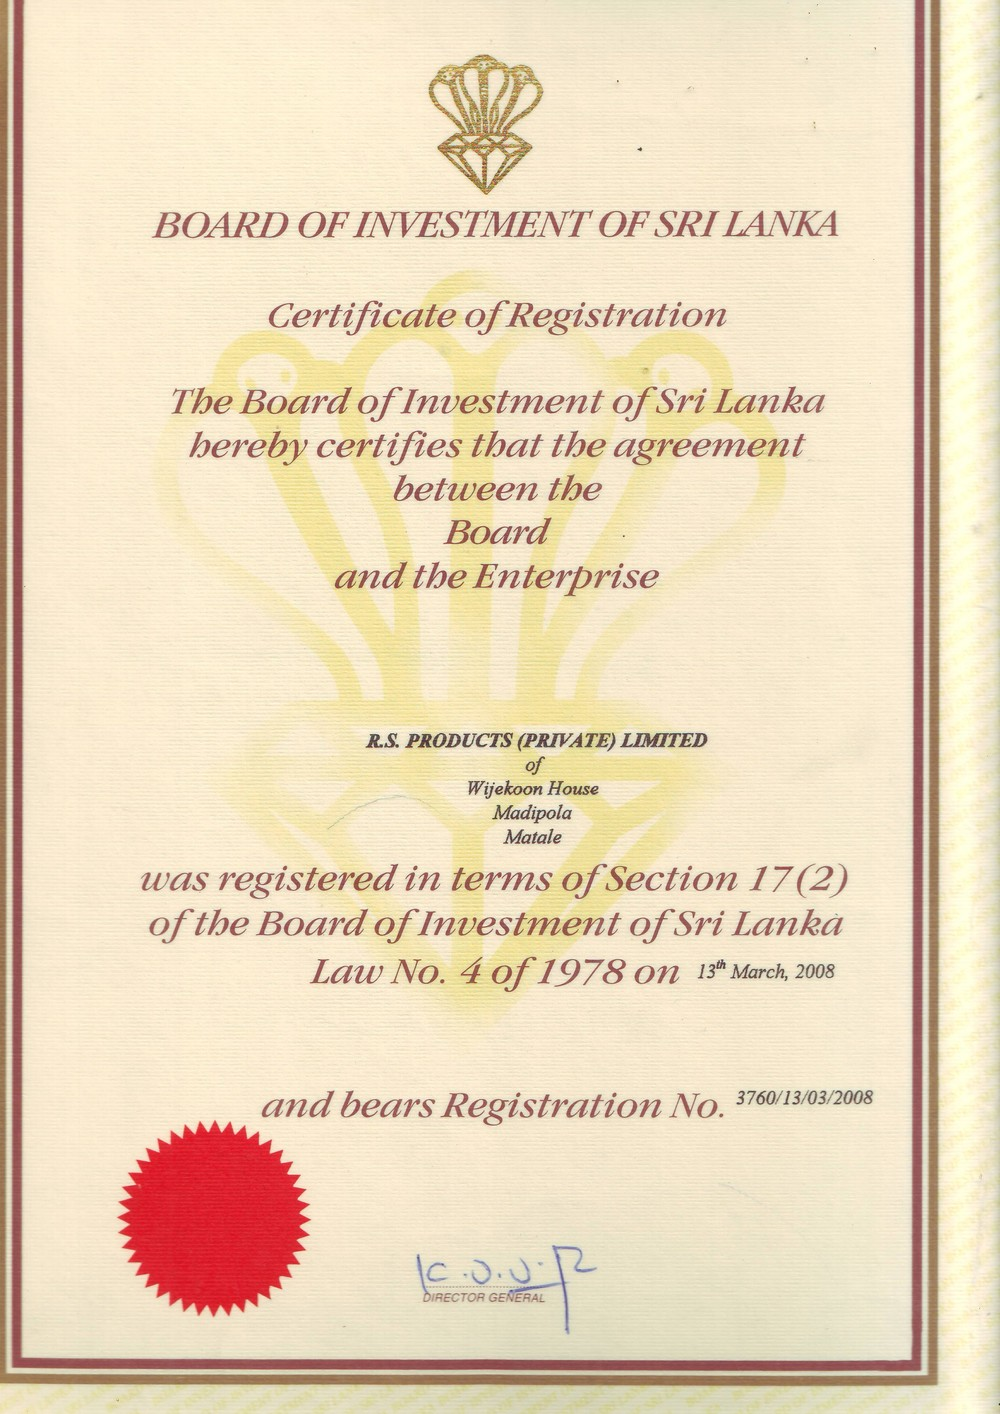 BOI Registration Certificate